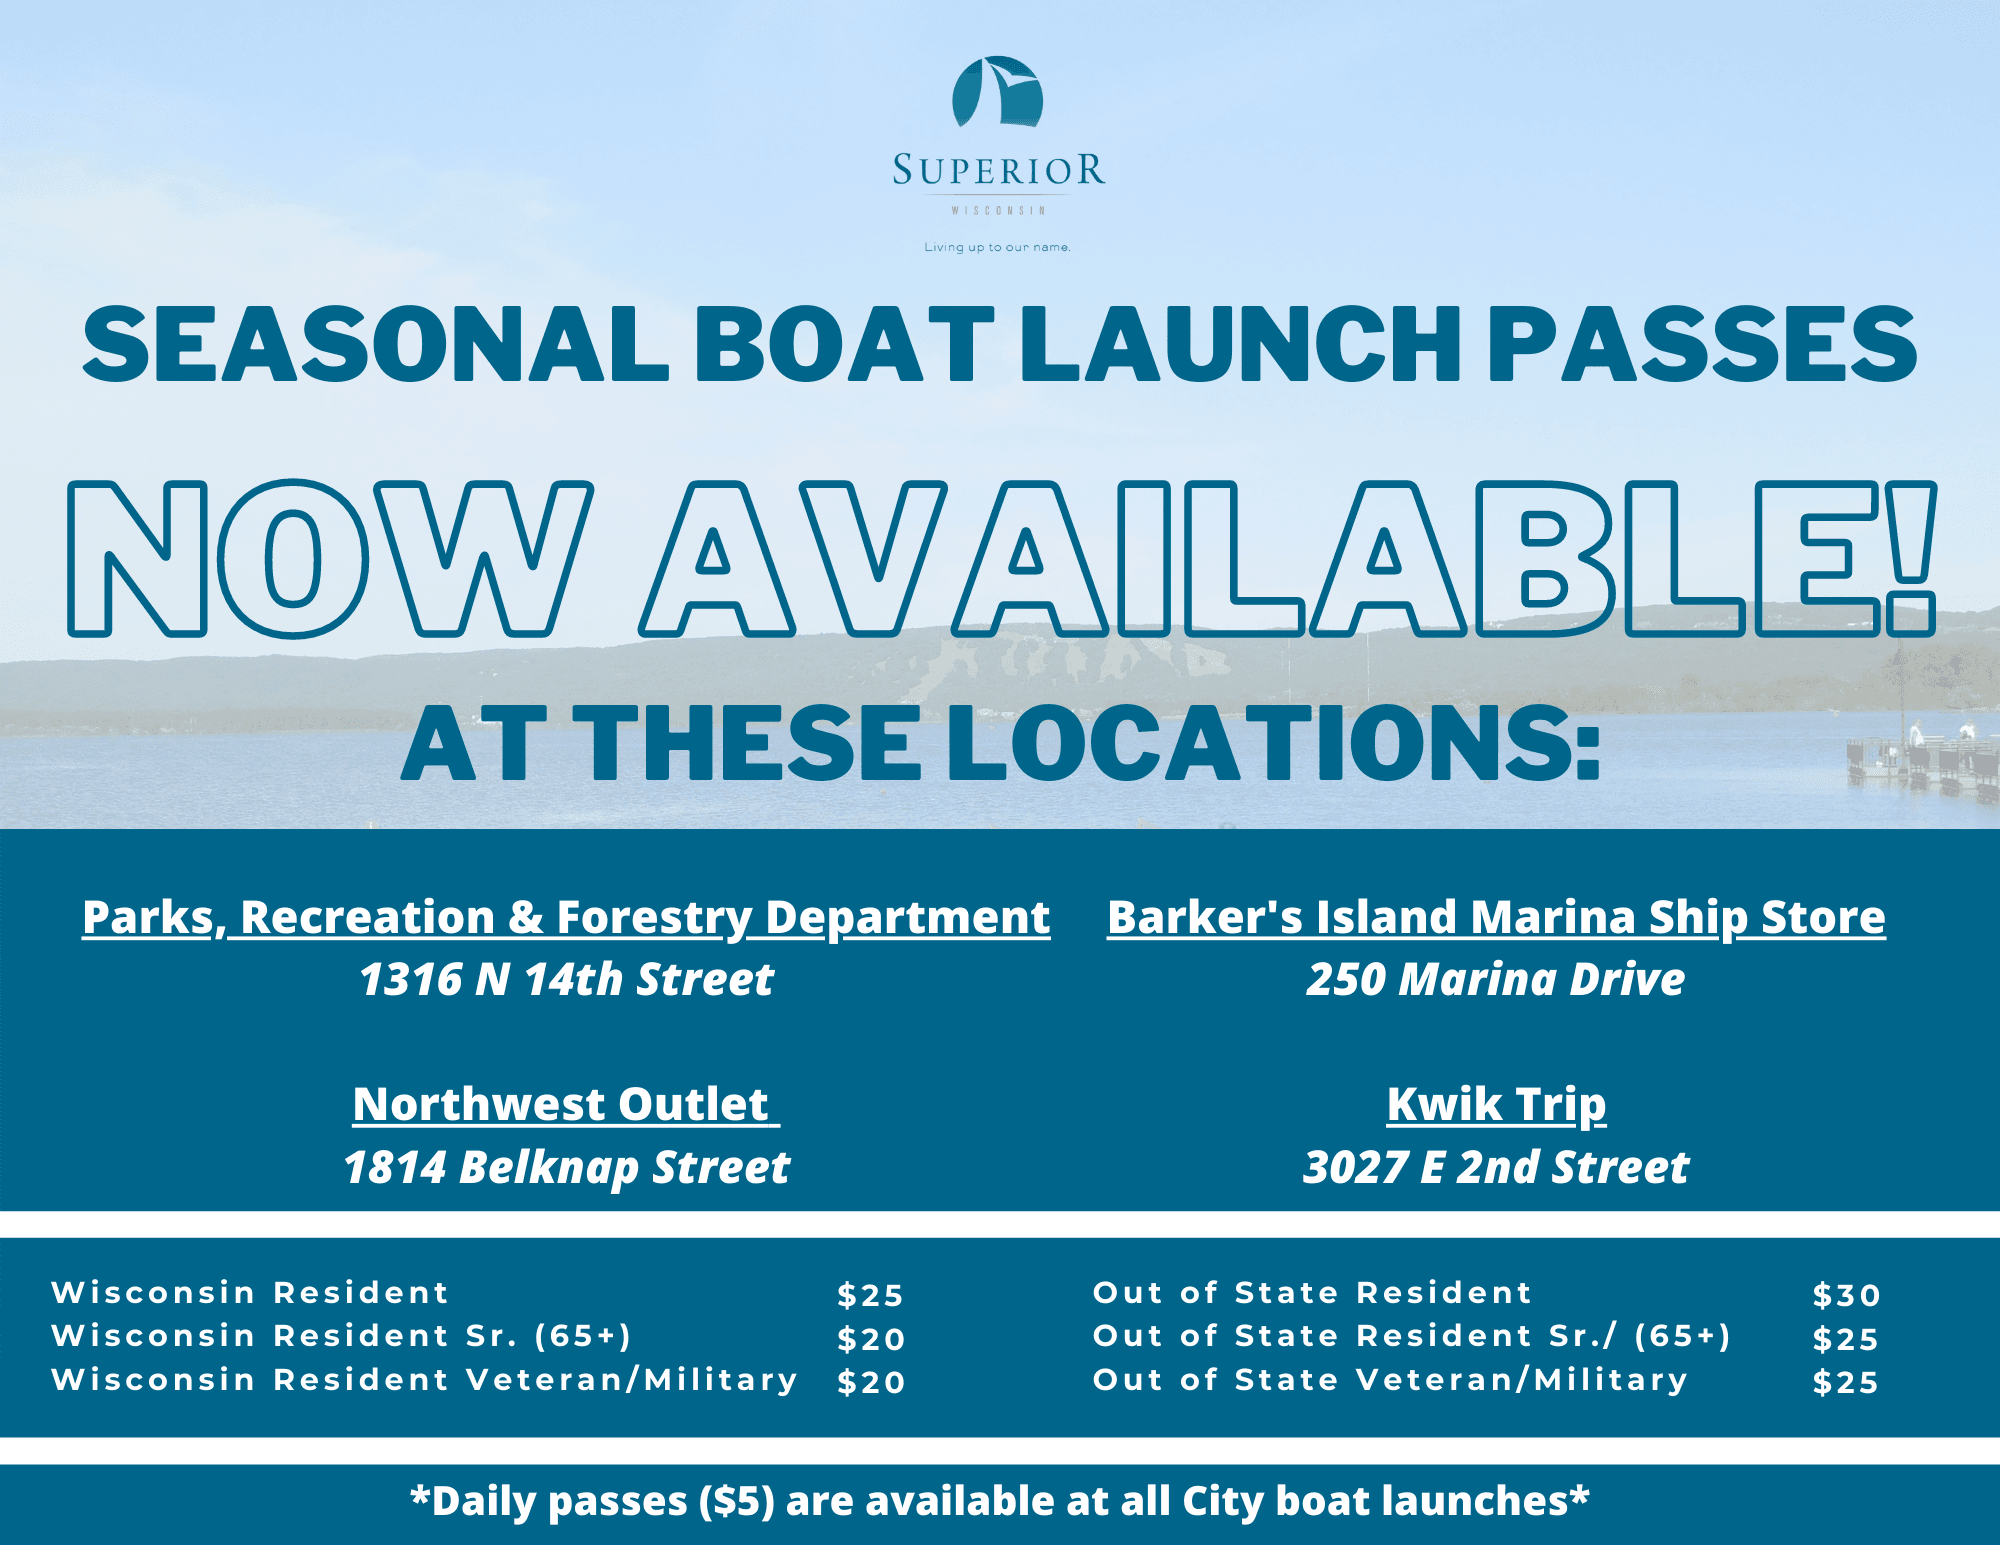 Seasonal Boat Launch Passes Now Available